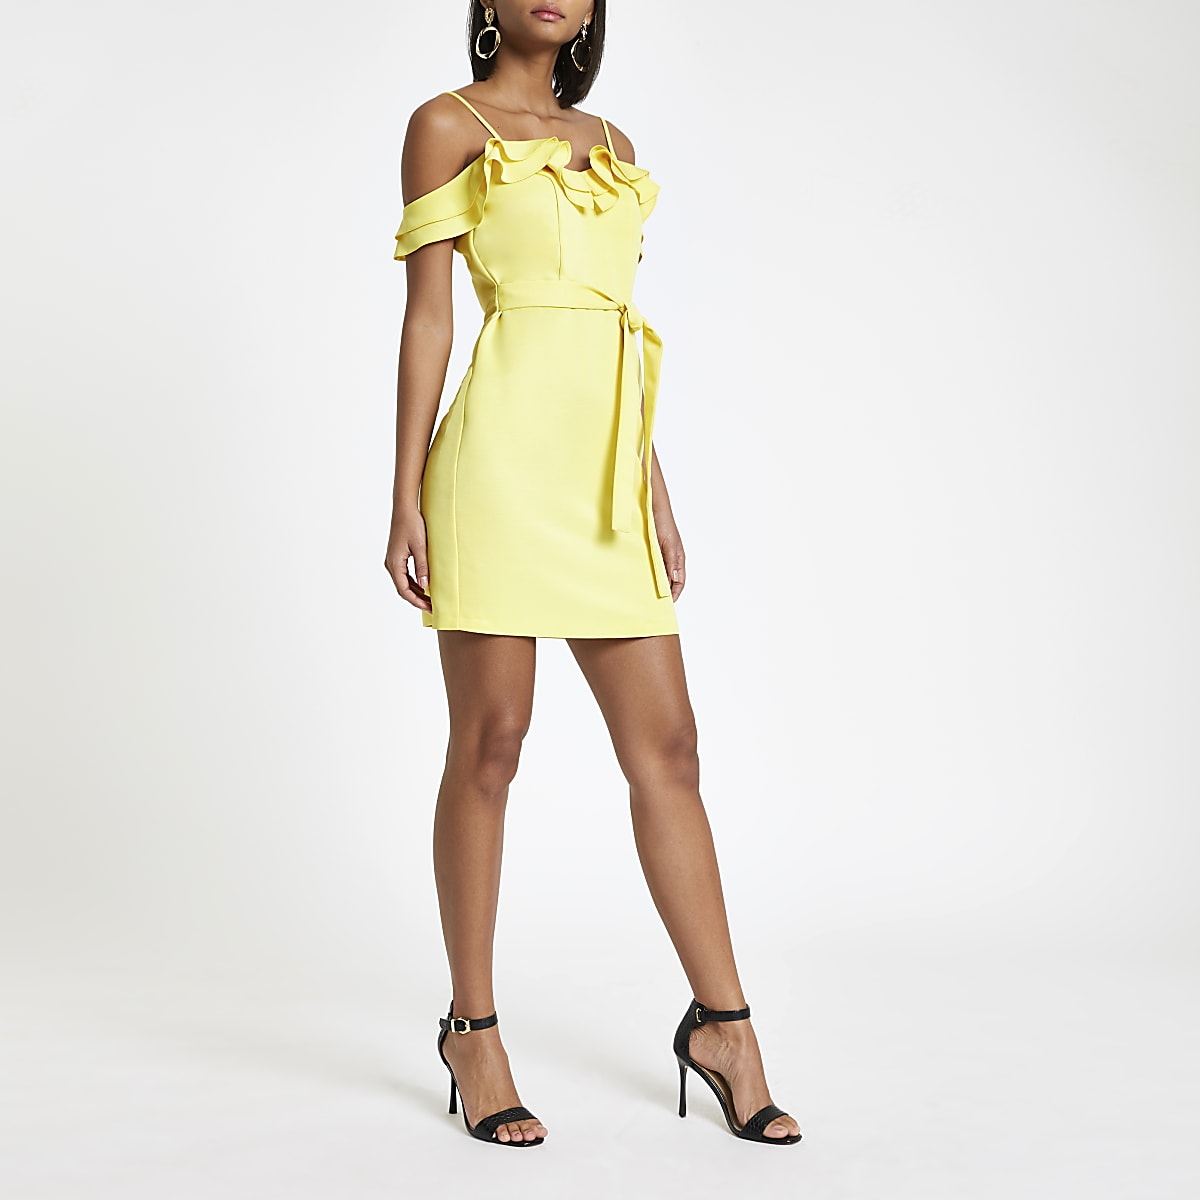 29f724c2db56b7 Yellow ruffle bardot mini dress - Bardot & Bandeau Dresses - Dresses - women